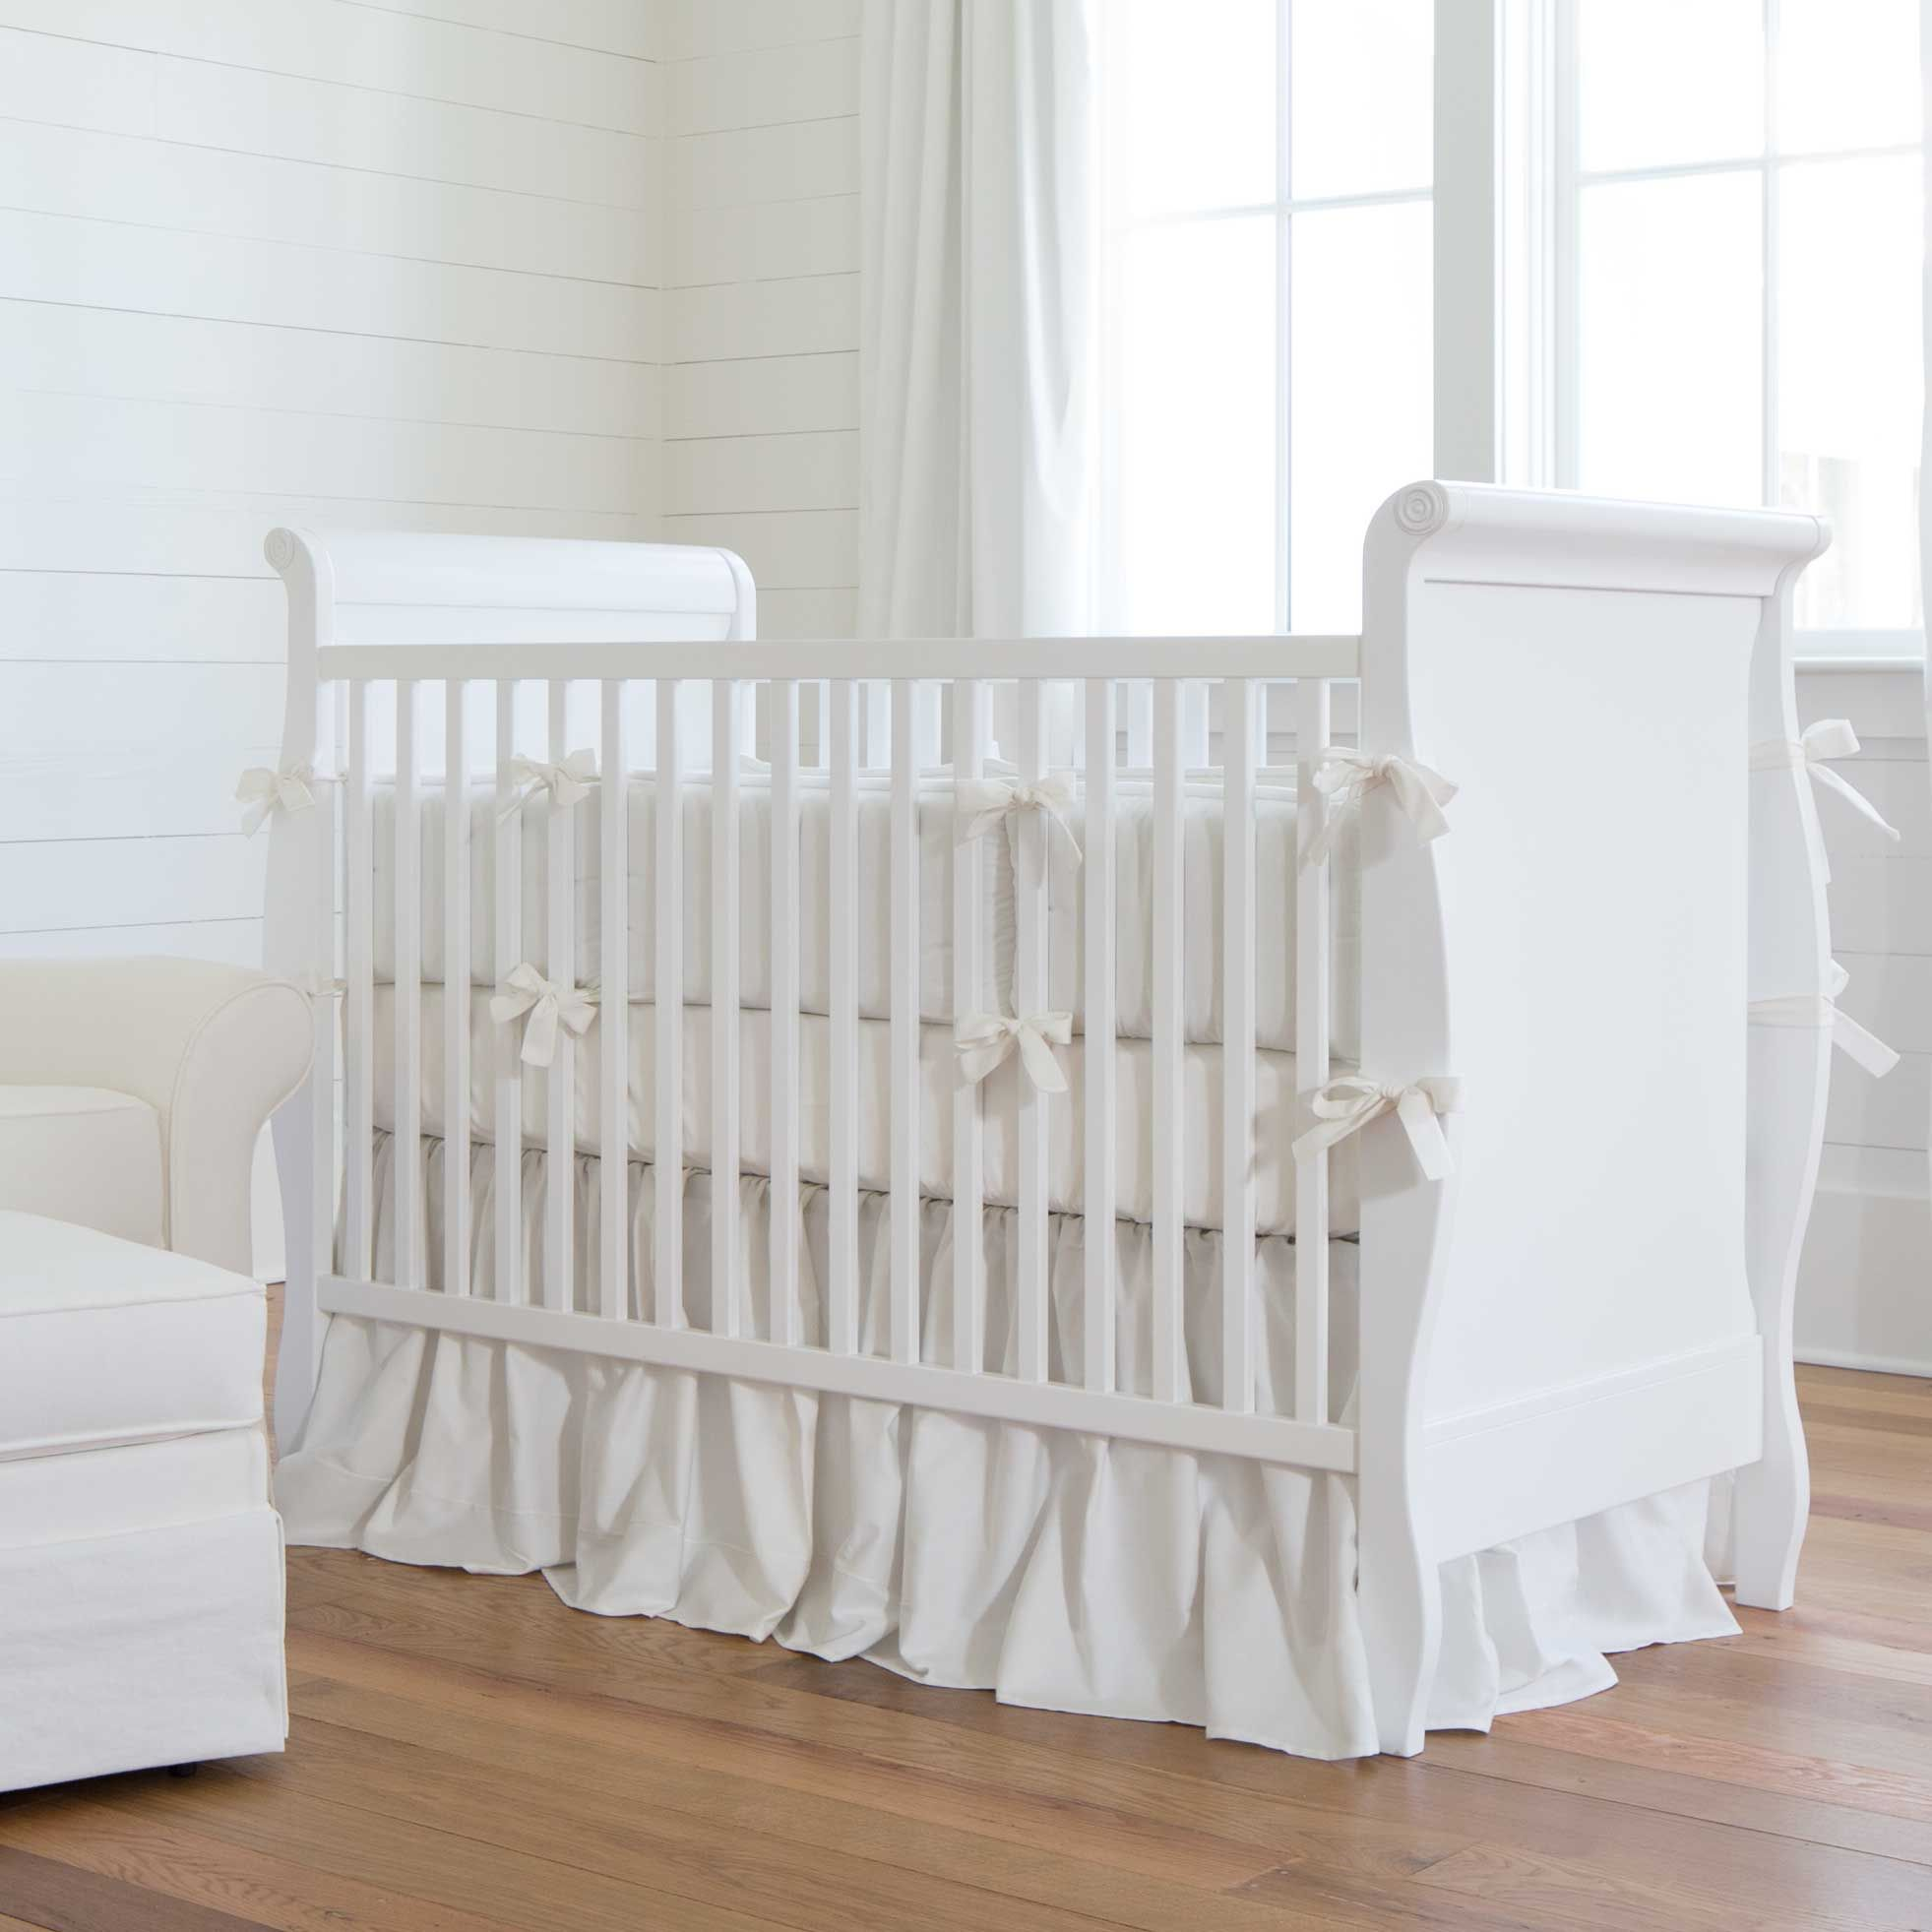 Solid White Baby Crib Bedding Collection Pink Crib Bedding Crib Bedding Boy White Crib Bedding